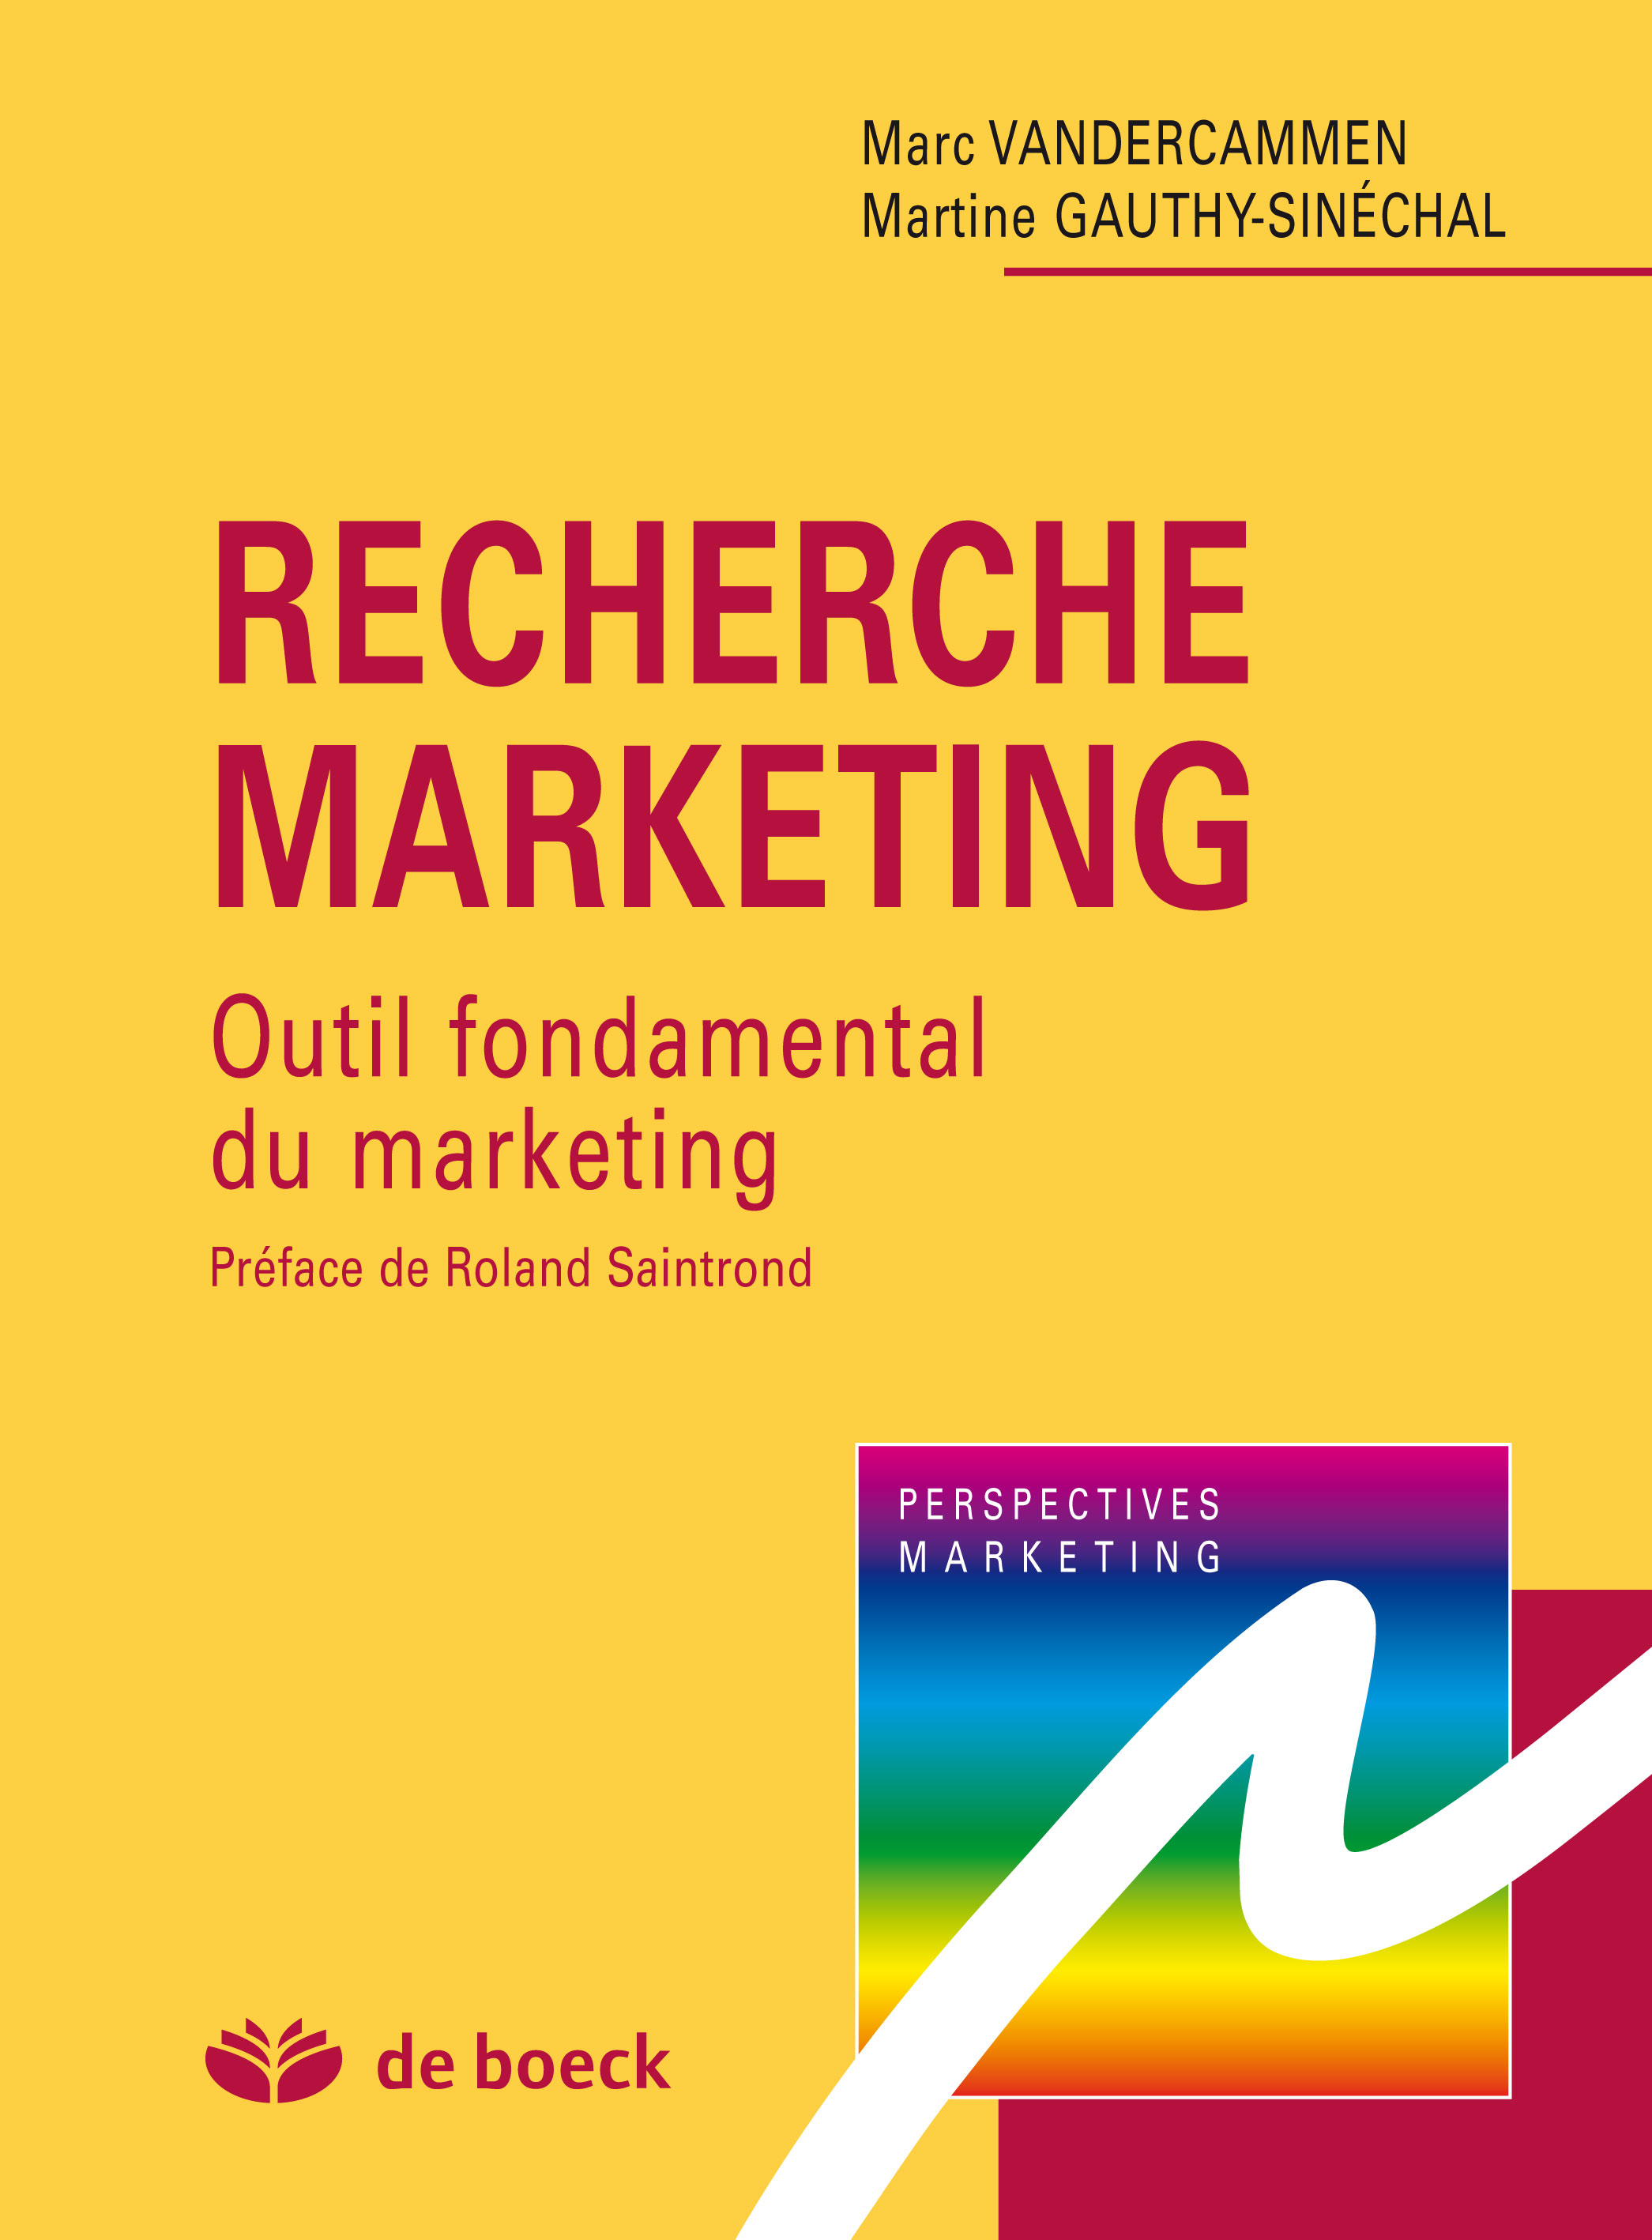 LIVRE MARKETING GRATUIT DUBOIS MANAGEMENT TÉLÉCHARGER KOTLER